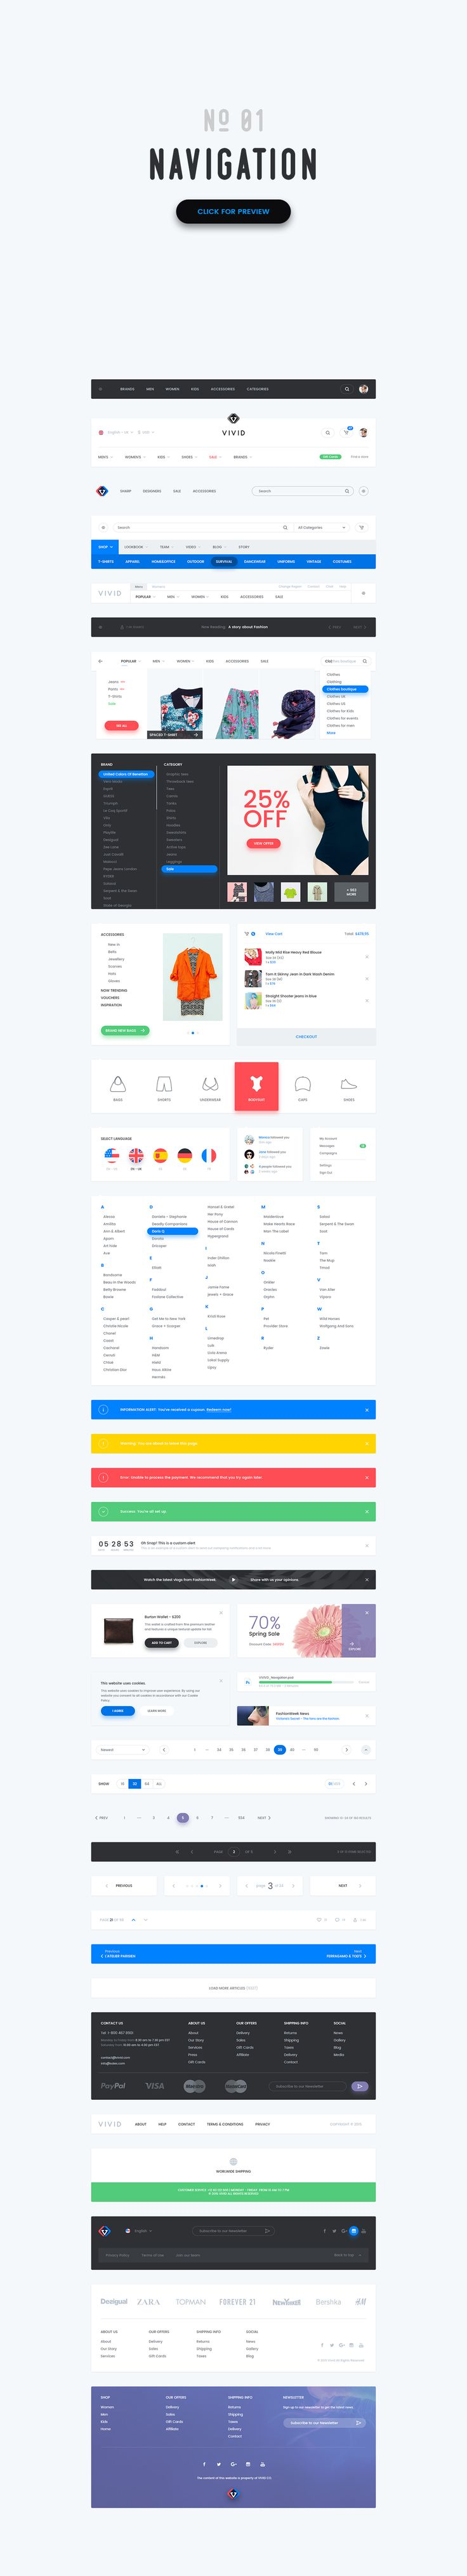 914 best Web images on Pinterest | Wireframe, Website designs and ...